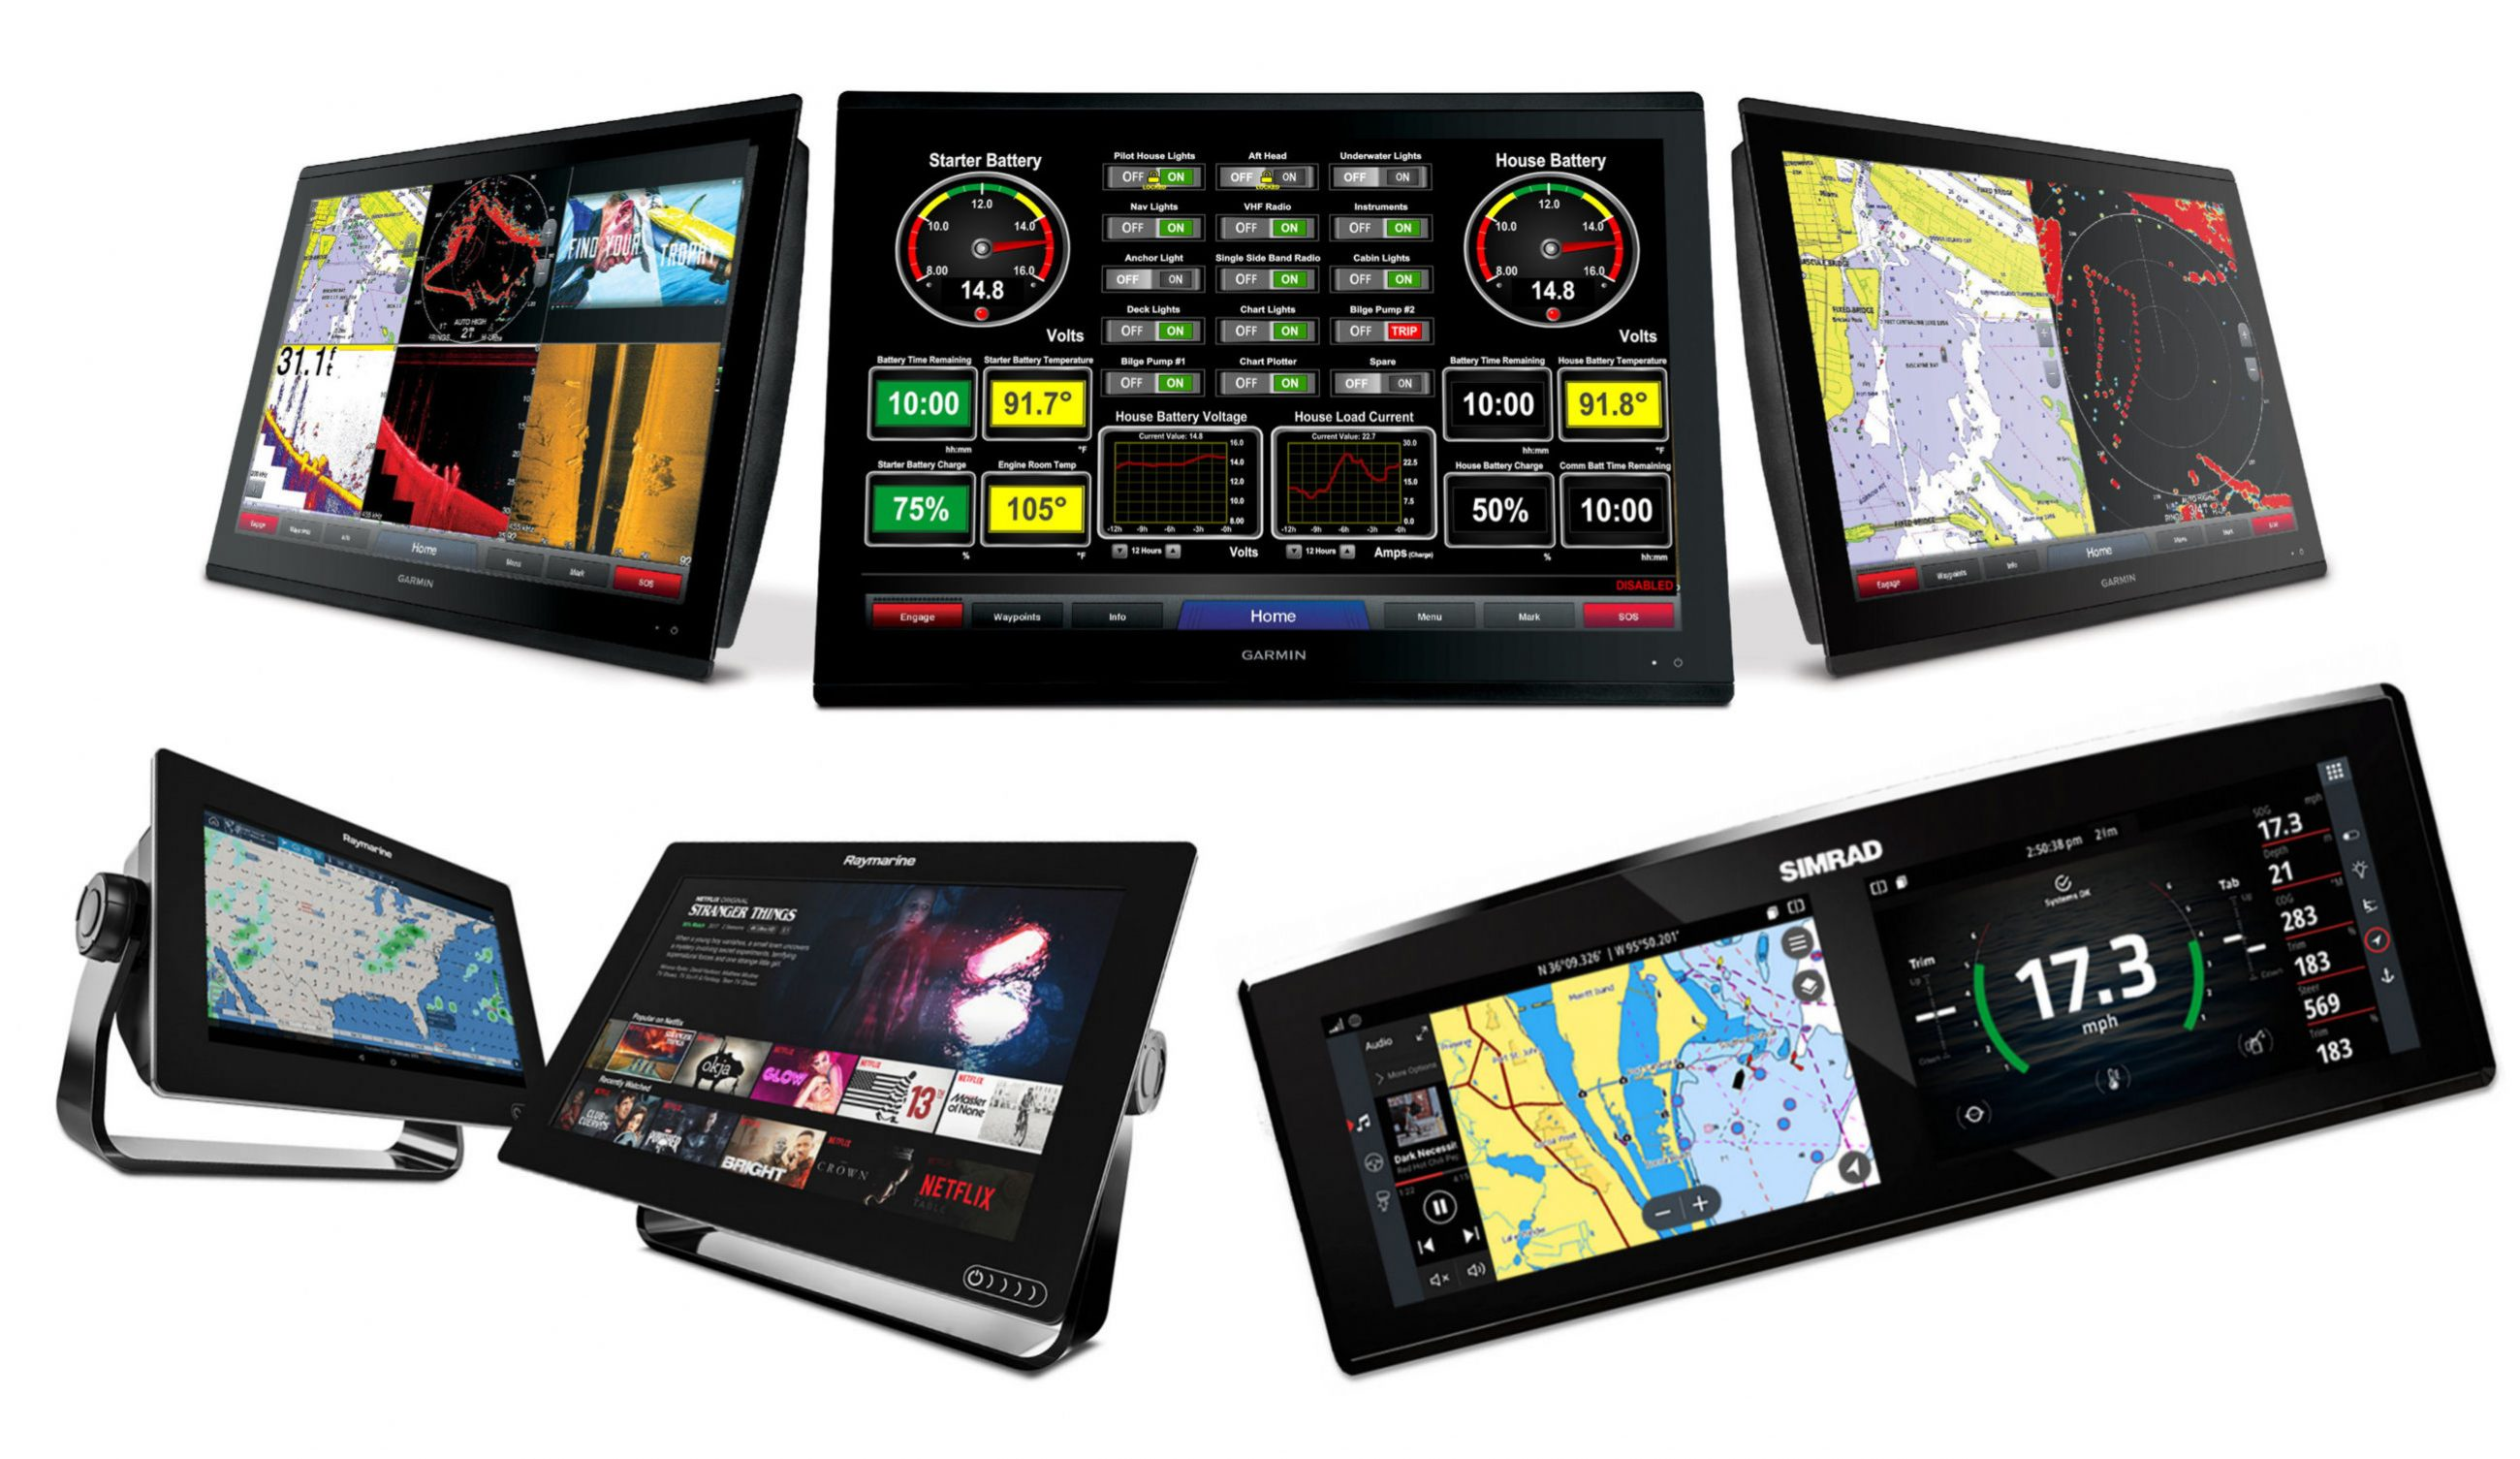 More boat system MFD apps: Maretron, Octoplex, Lumishore, Victron